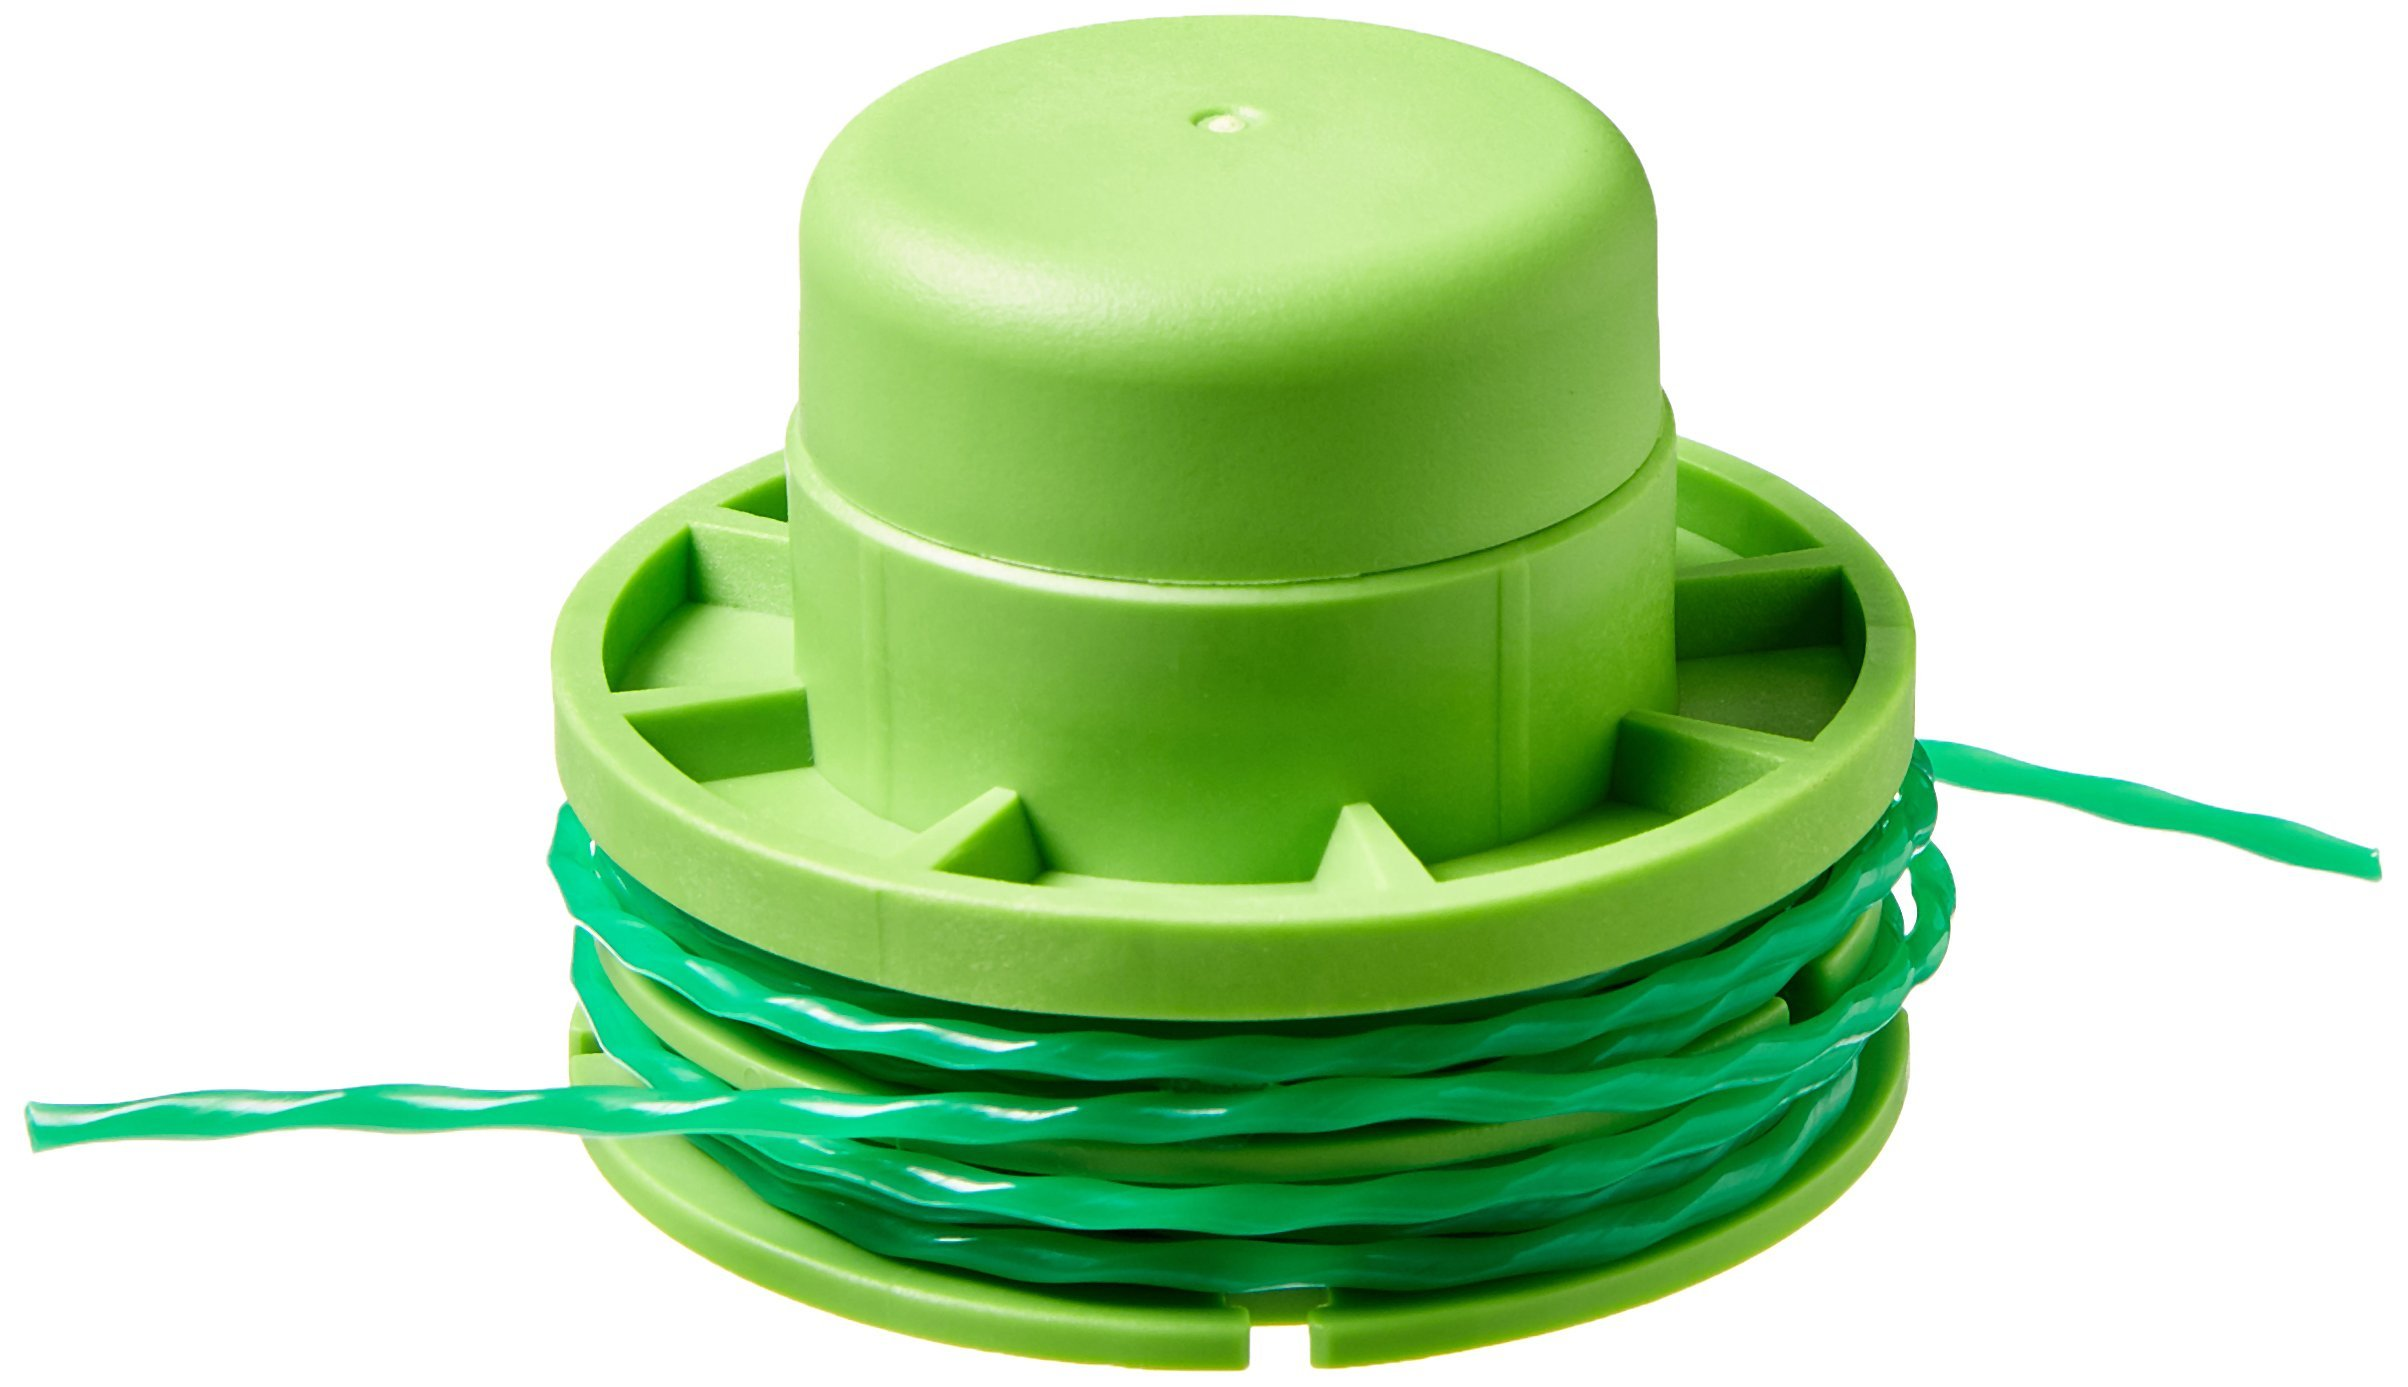 EGO Power+ AS1200 12-Inch Pre-Wound Spool with Line for EGO 12-Inch String Trimmer ST1201/ST1200